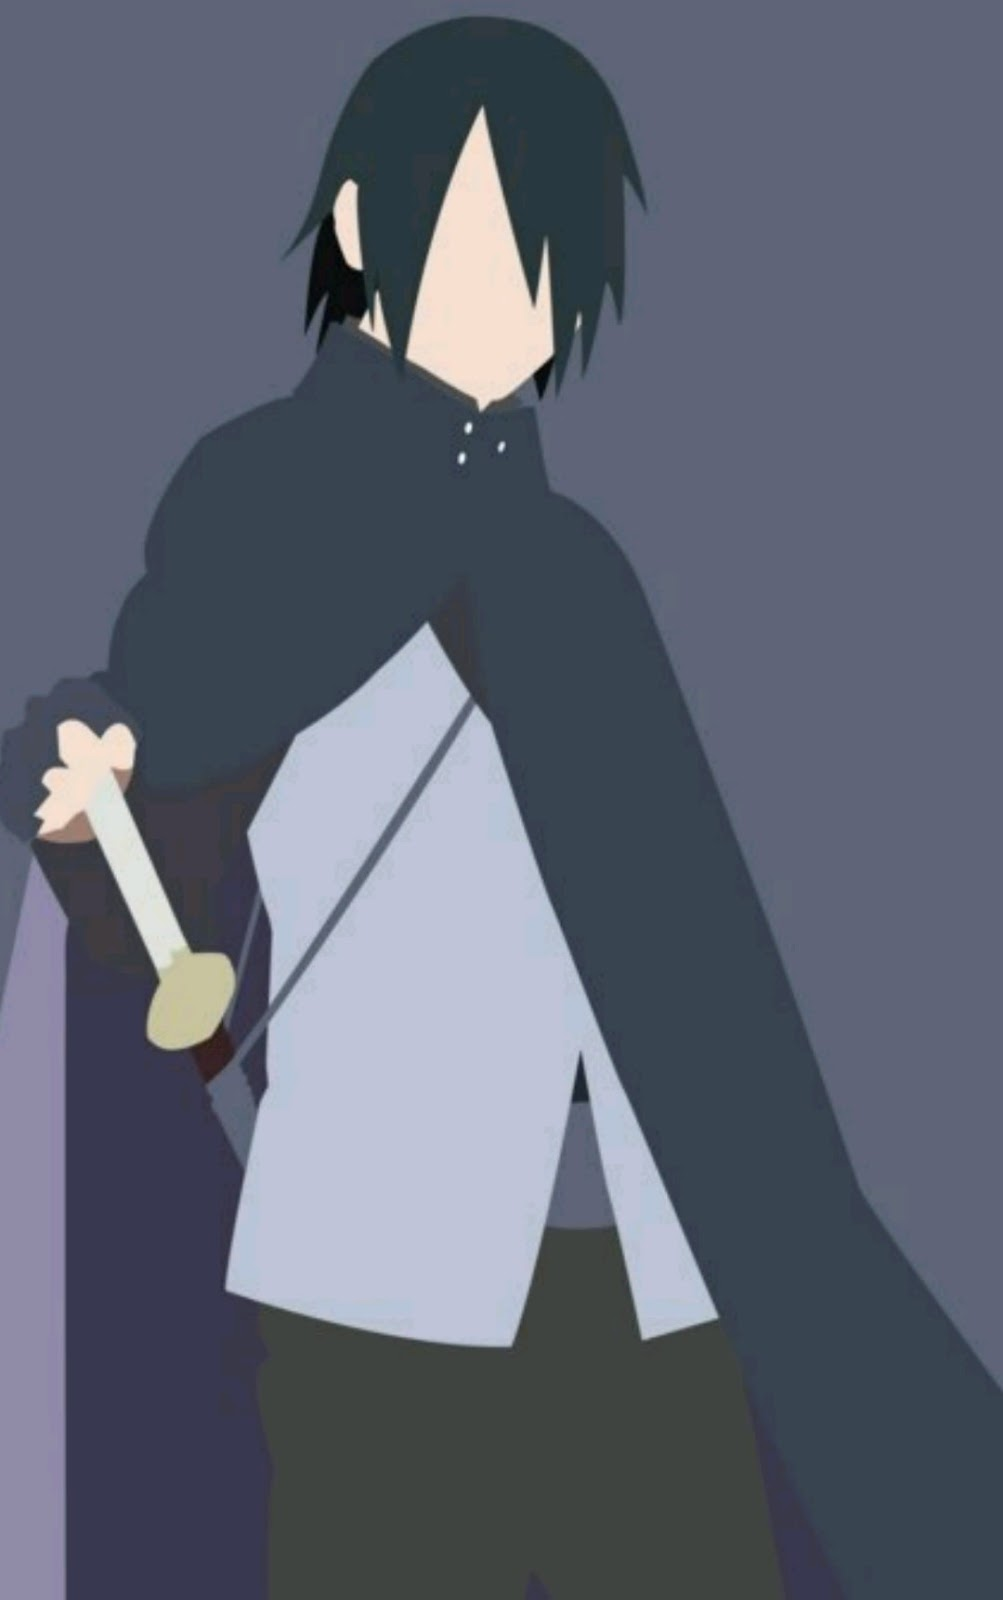 13. Download wallpaper uchiha sasuke vektor untuk android dan whatsApp chat